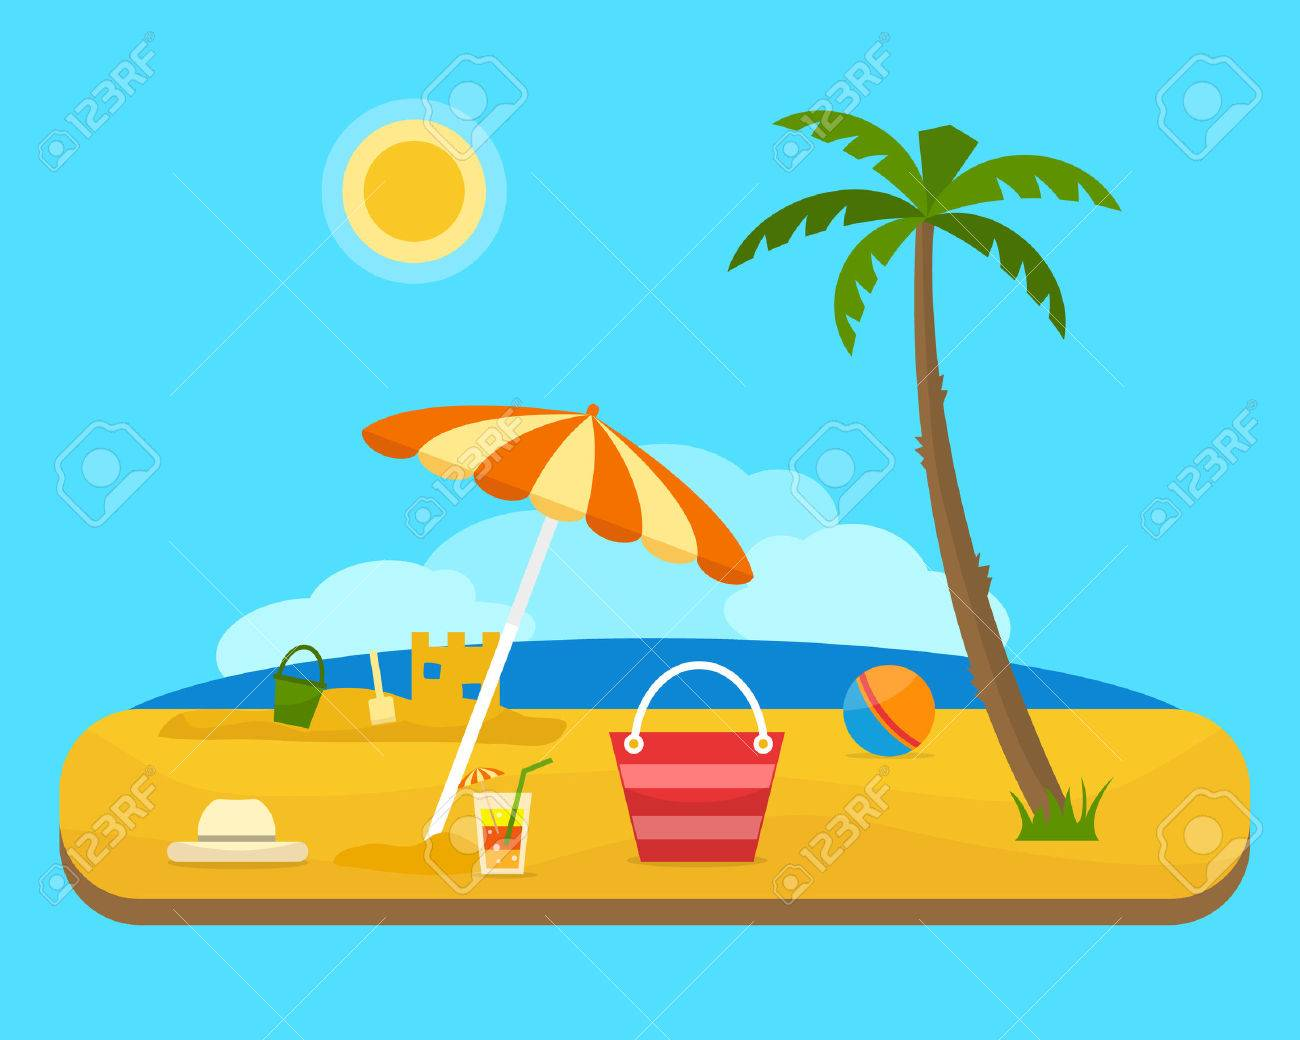 Relax and play on the beach under a palm tree. Umbrella, ball and beach bag with sea on tropical background. Sand castle. Flat style vector illustration. - 60322516